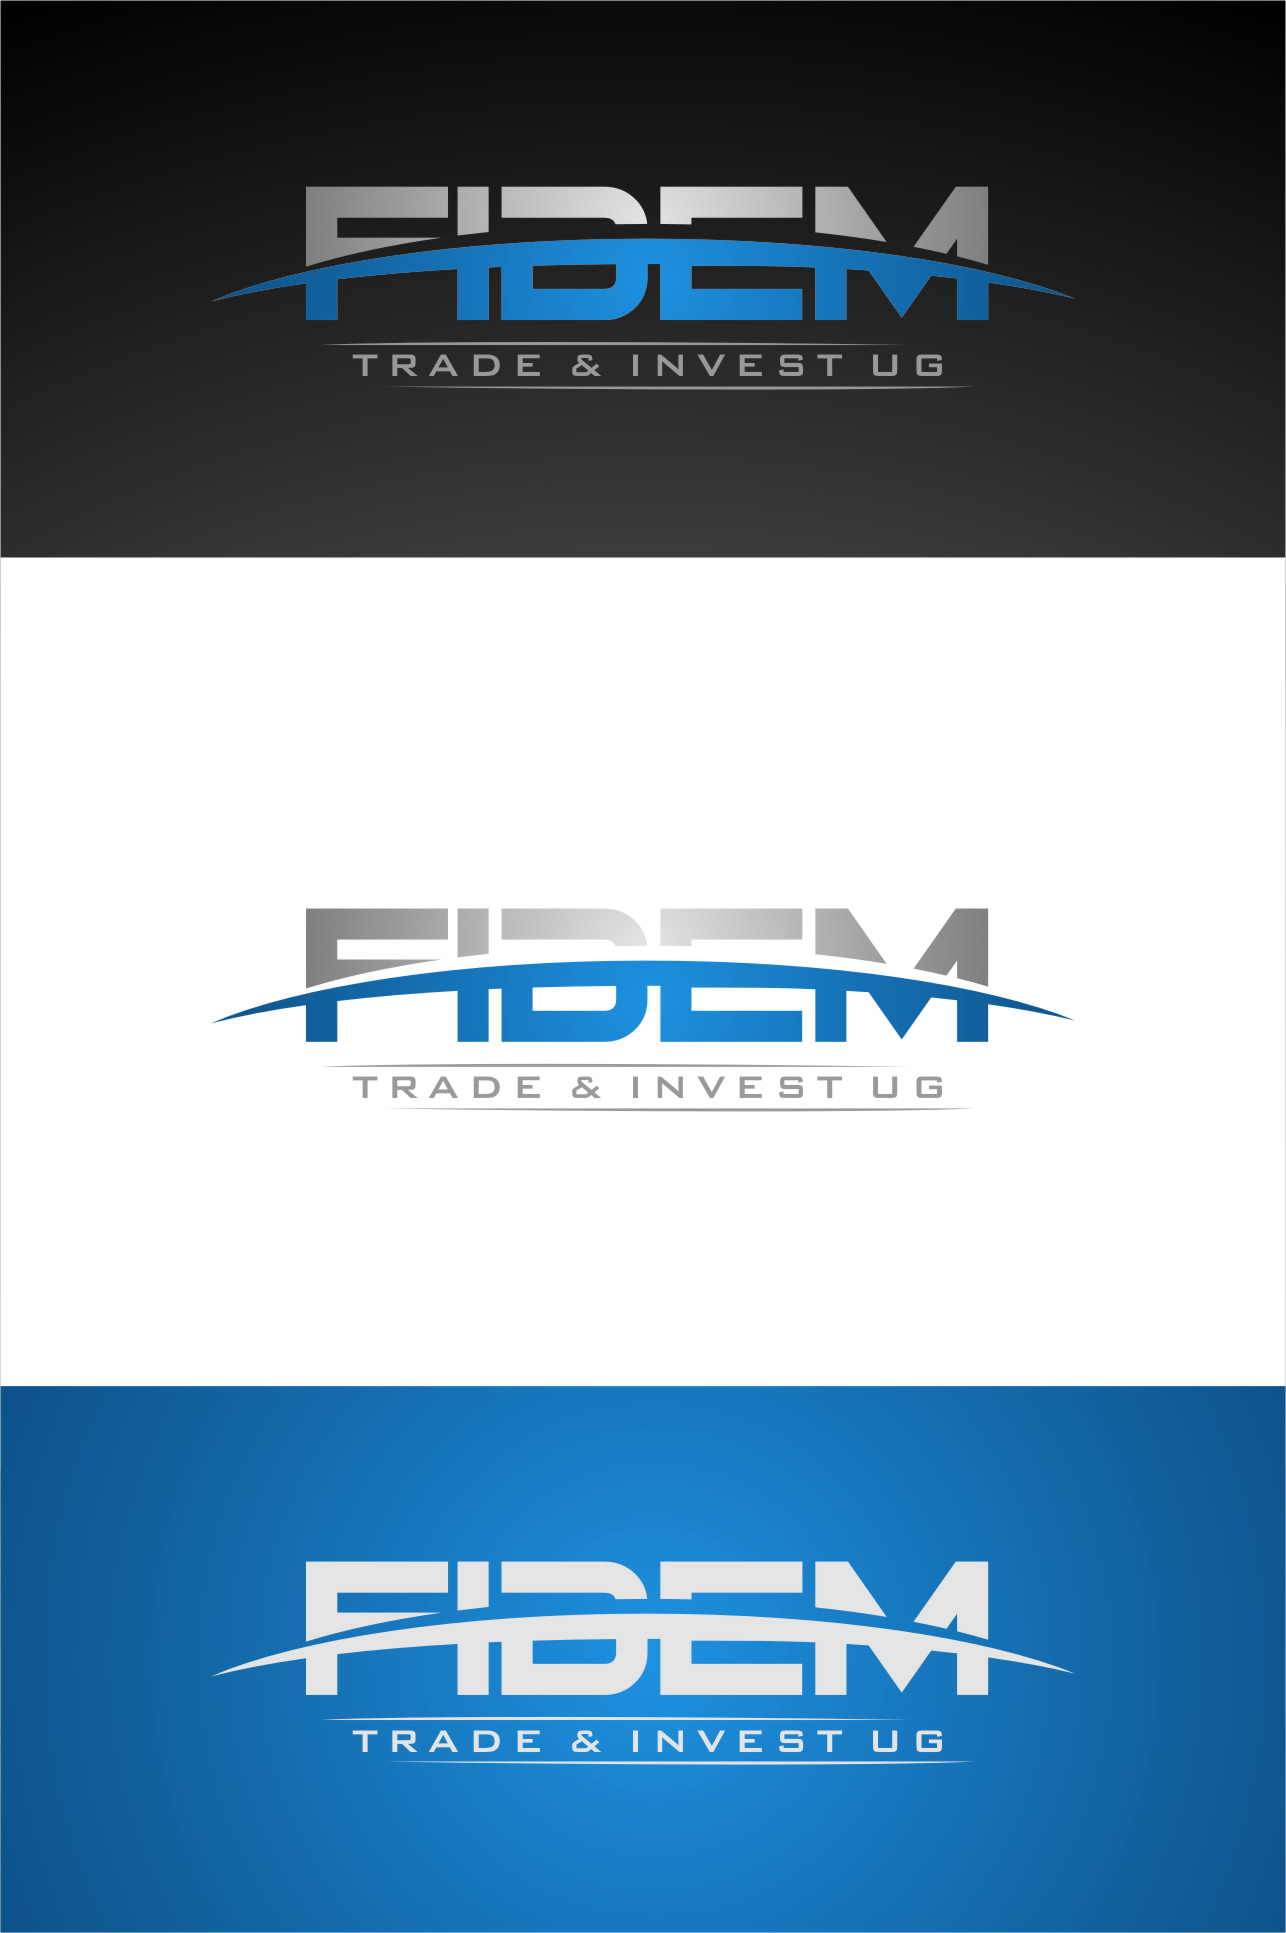 Logo Design by Ngepet_art - Entry No. 360 in the Logo Design Contest Professional Logo Design for FIDEM Trade & Invest UG.